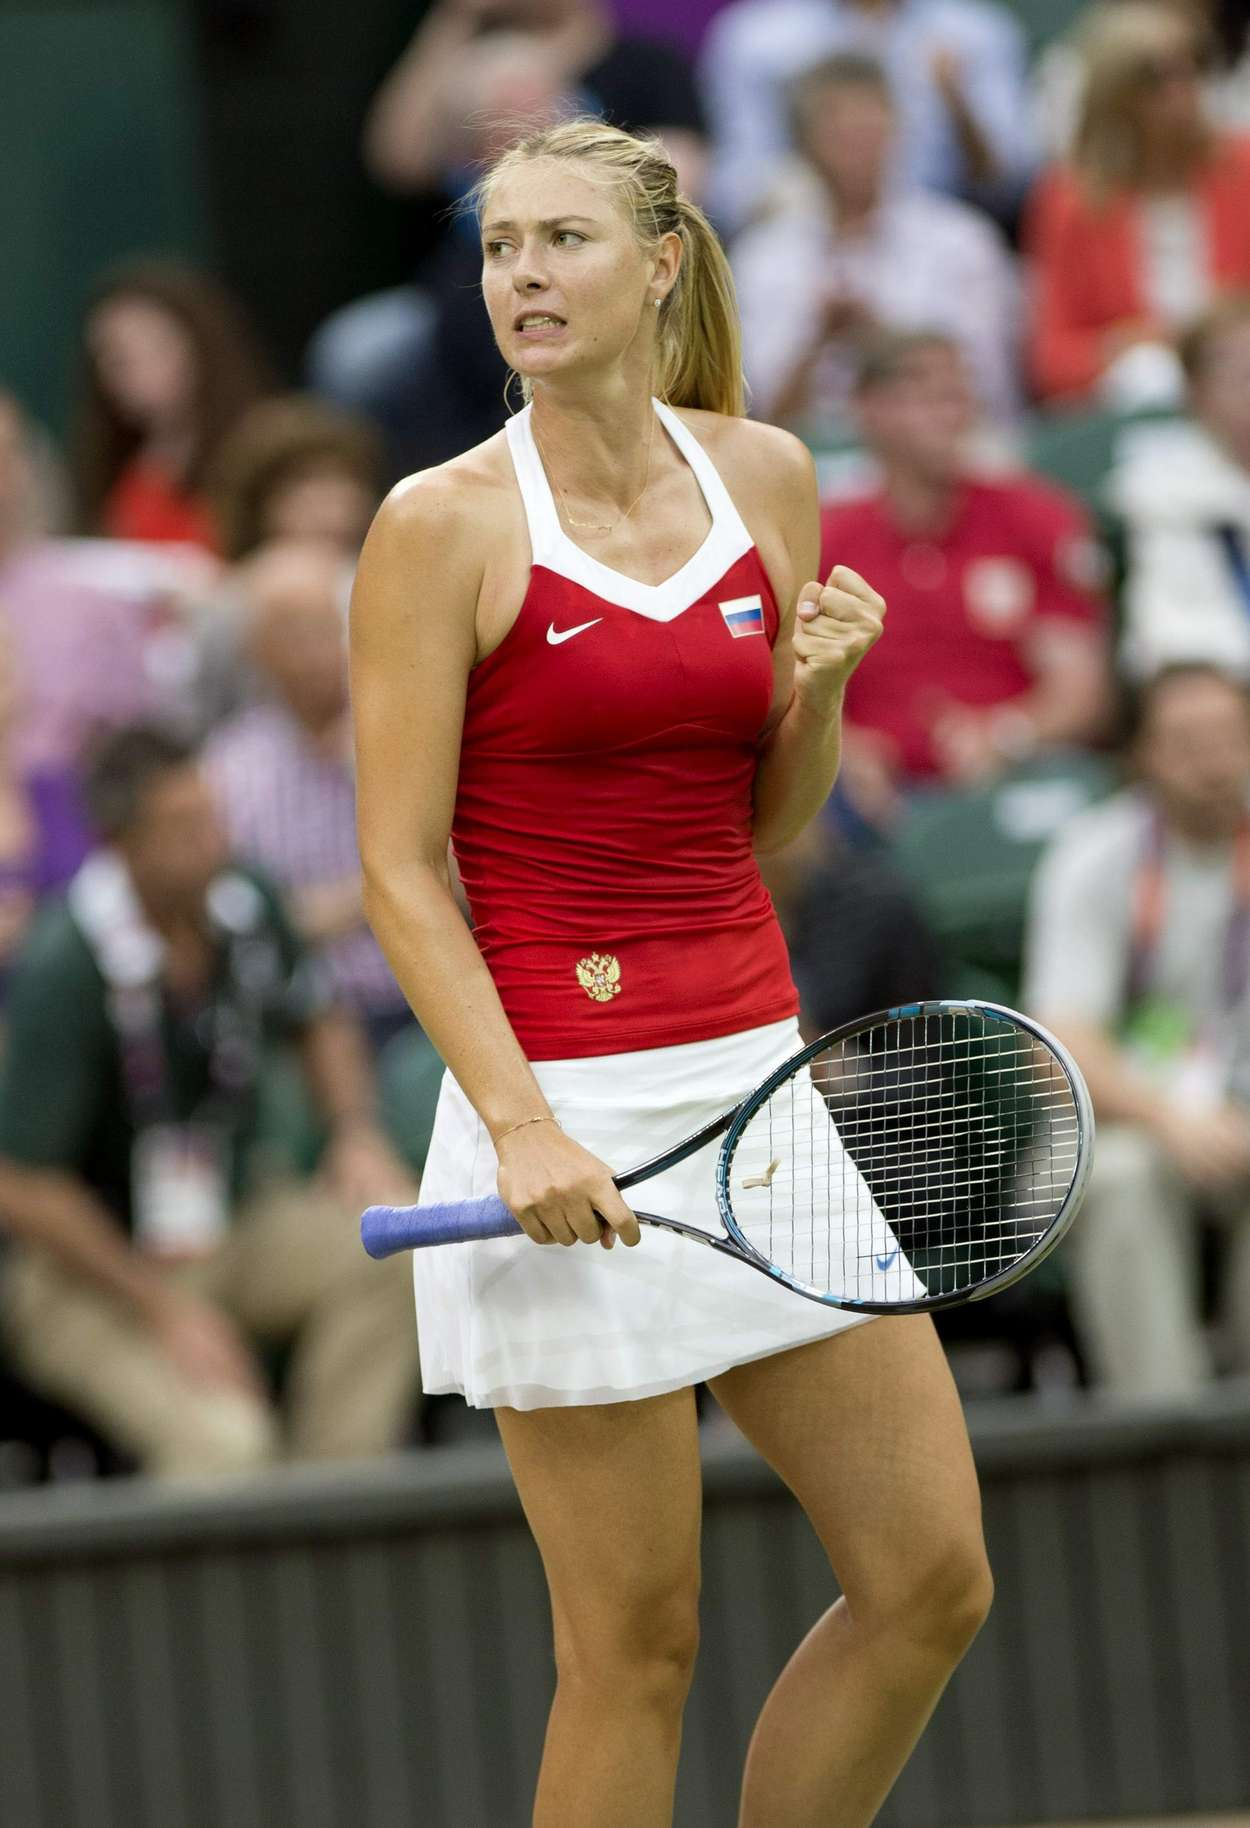 Maria Sharapova 2012 Olympic Photos 16 GotCeleb